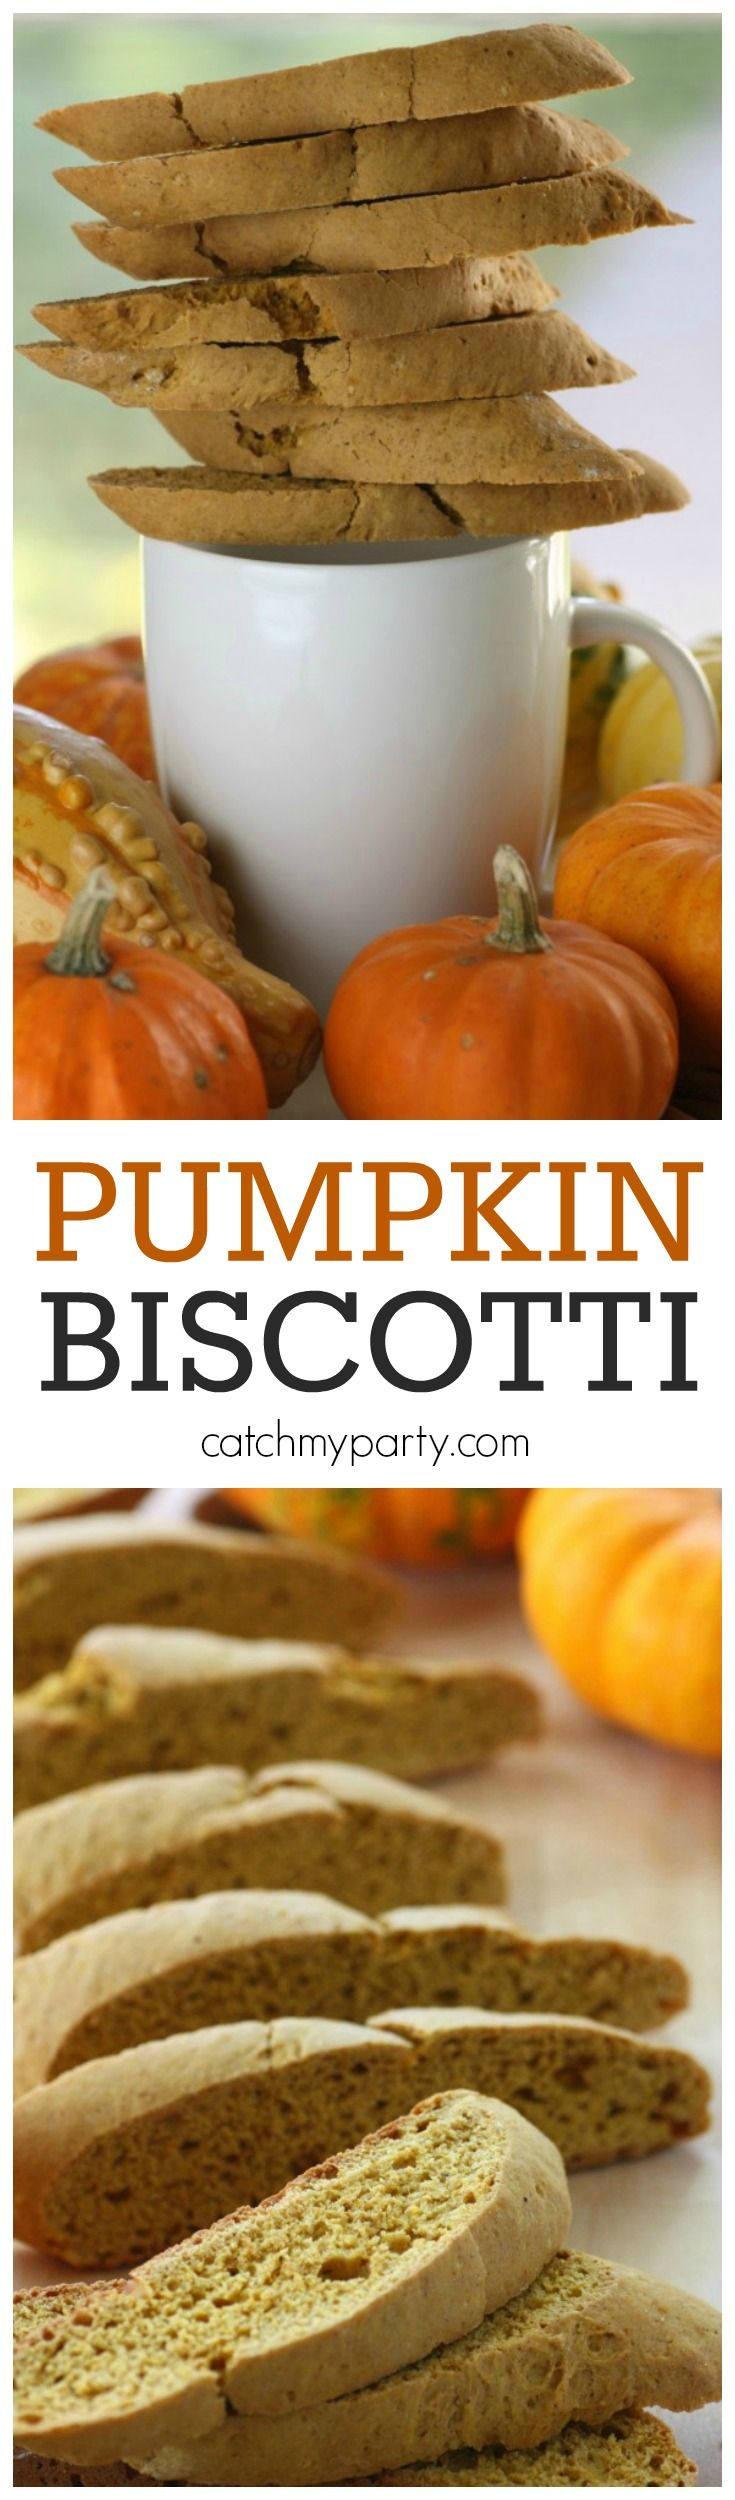 This is the most delicious pumpkin biscotti recipe. It's made with whole ingredients and tastes like pumpkin and cinnamon, with great crunch. It would great to serve with coffee on Thanksgiving! See more Thanksgiving ideas at CatchMyParty.com.  #quickerpickerupper